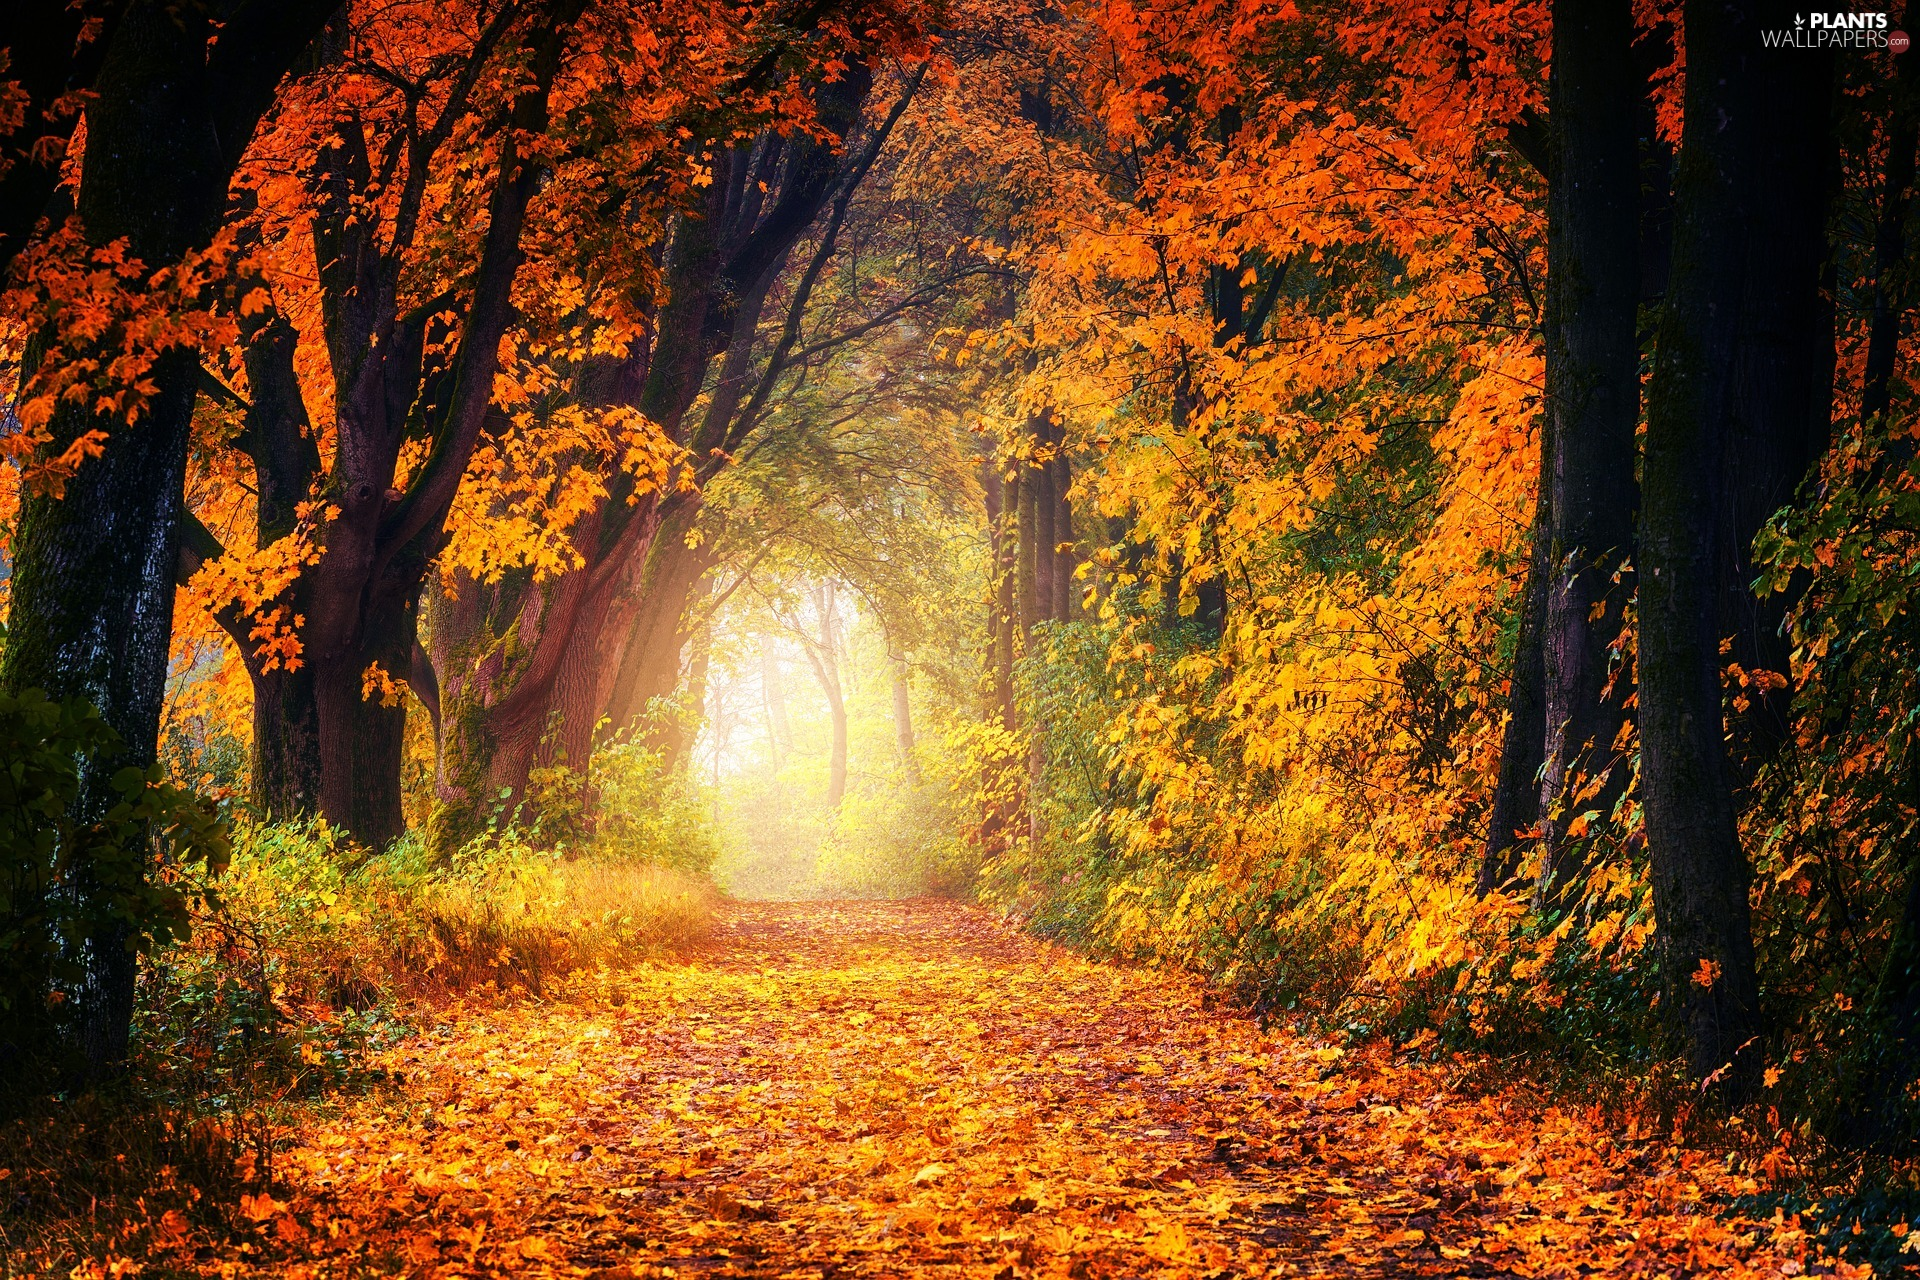 trees, autumn, forest, Plants, viewes, Way